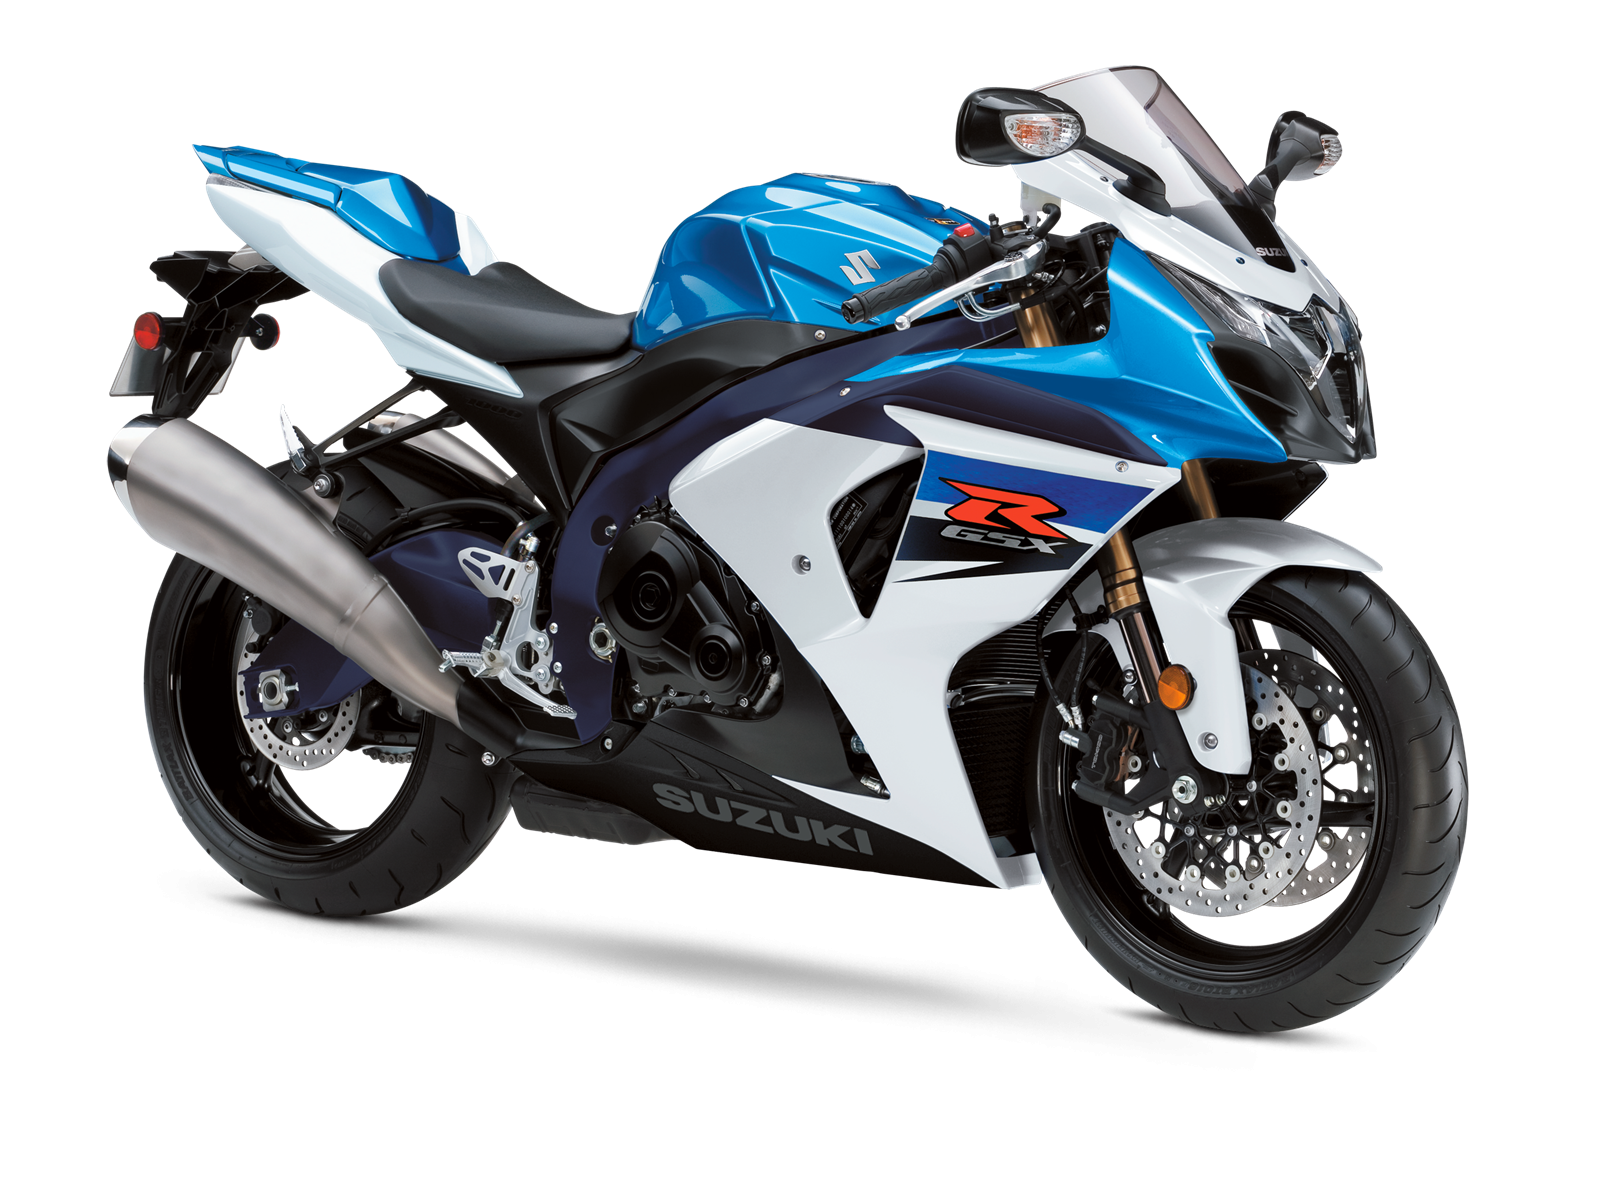 Moto PNG image, motorcycle PNG picture download - PNG Motor